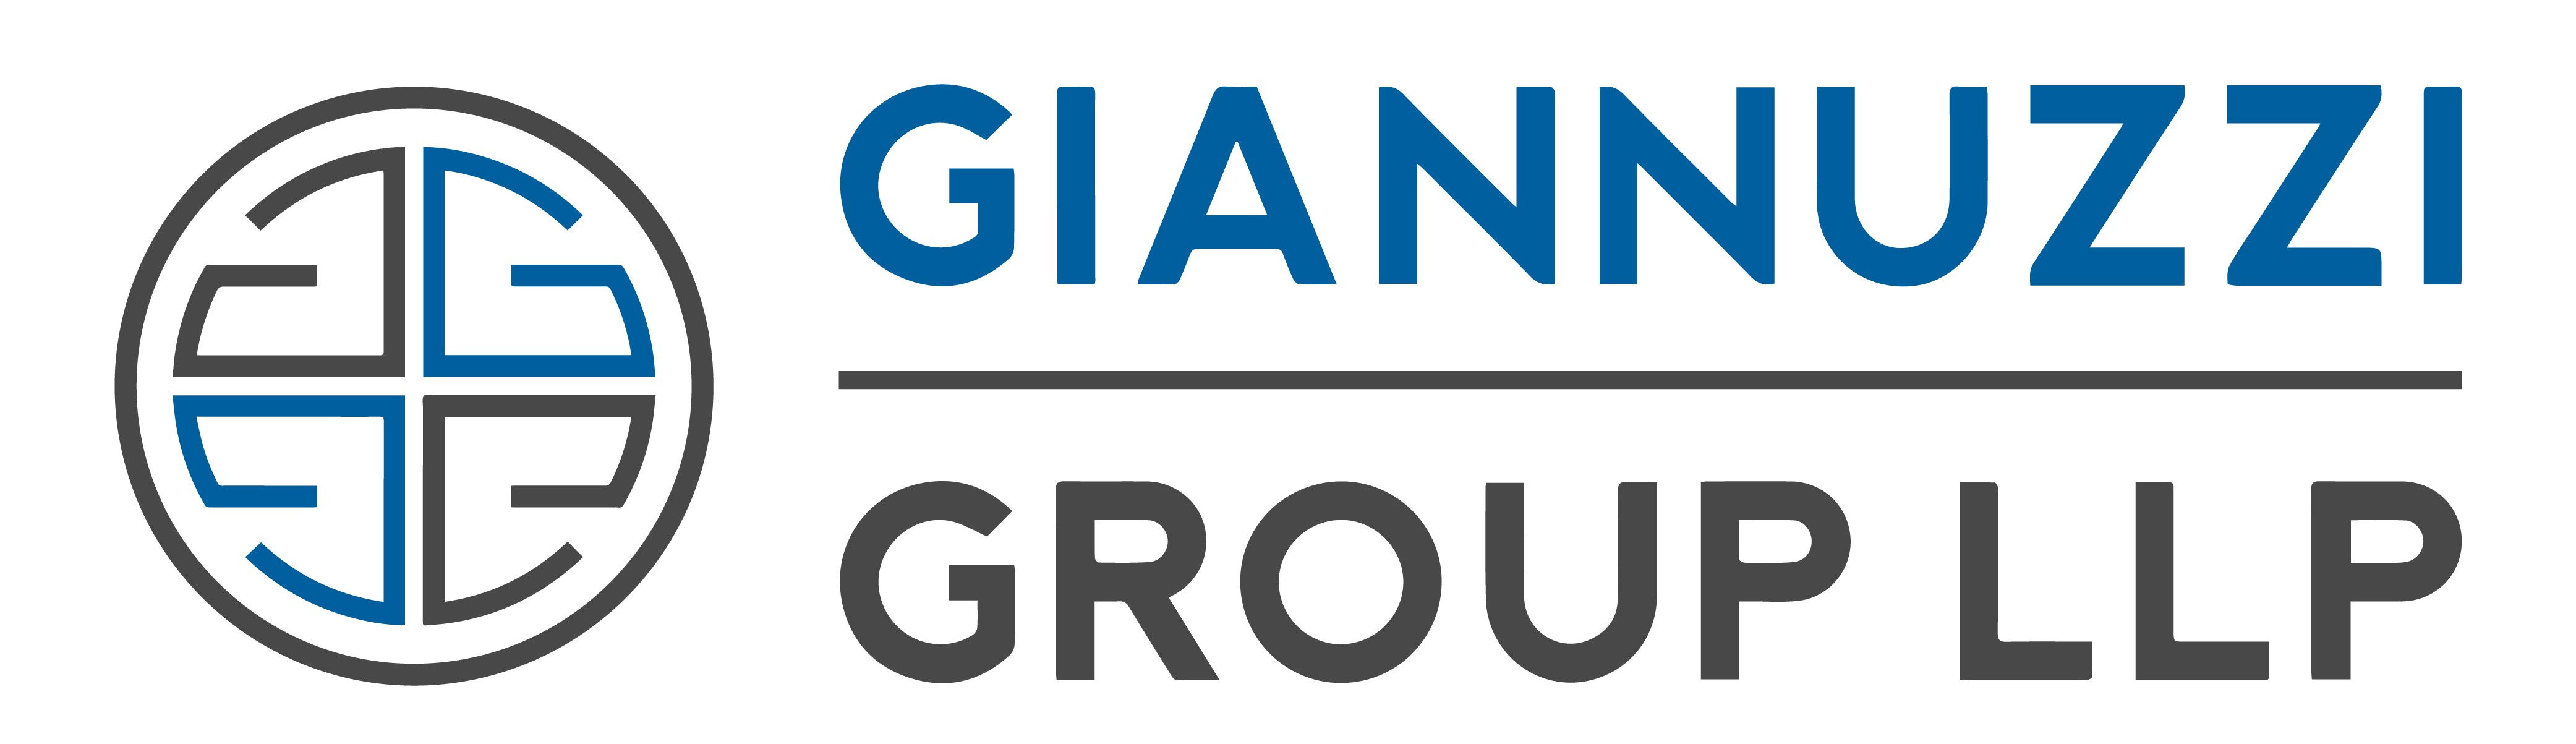 Giannuzzi Group - sponsoring BevNET Live Winter 2019